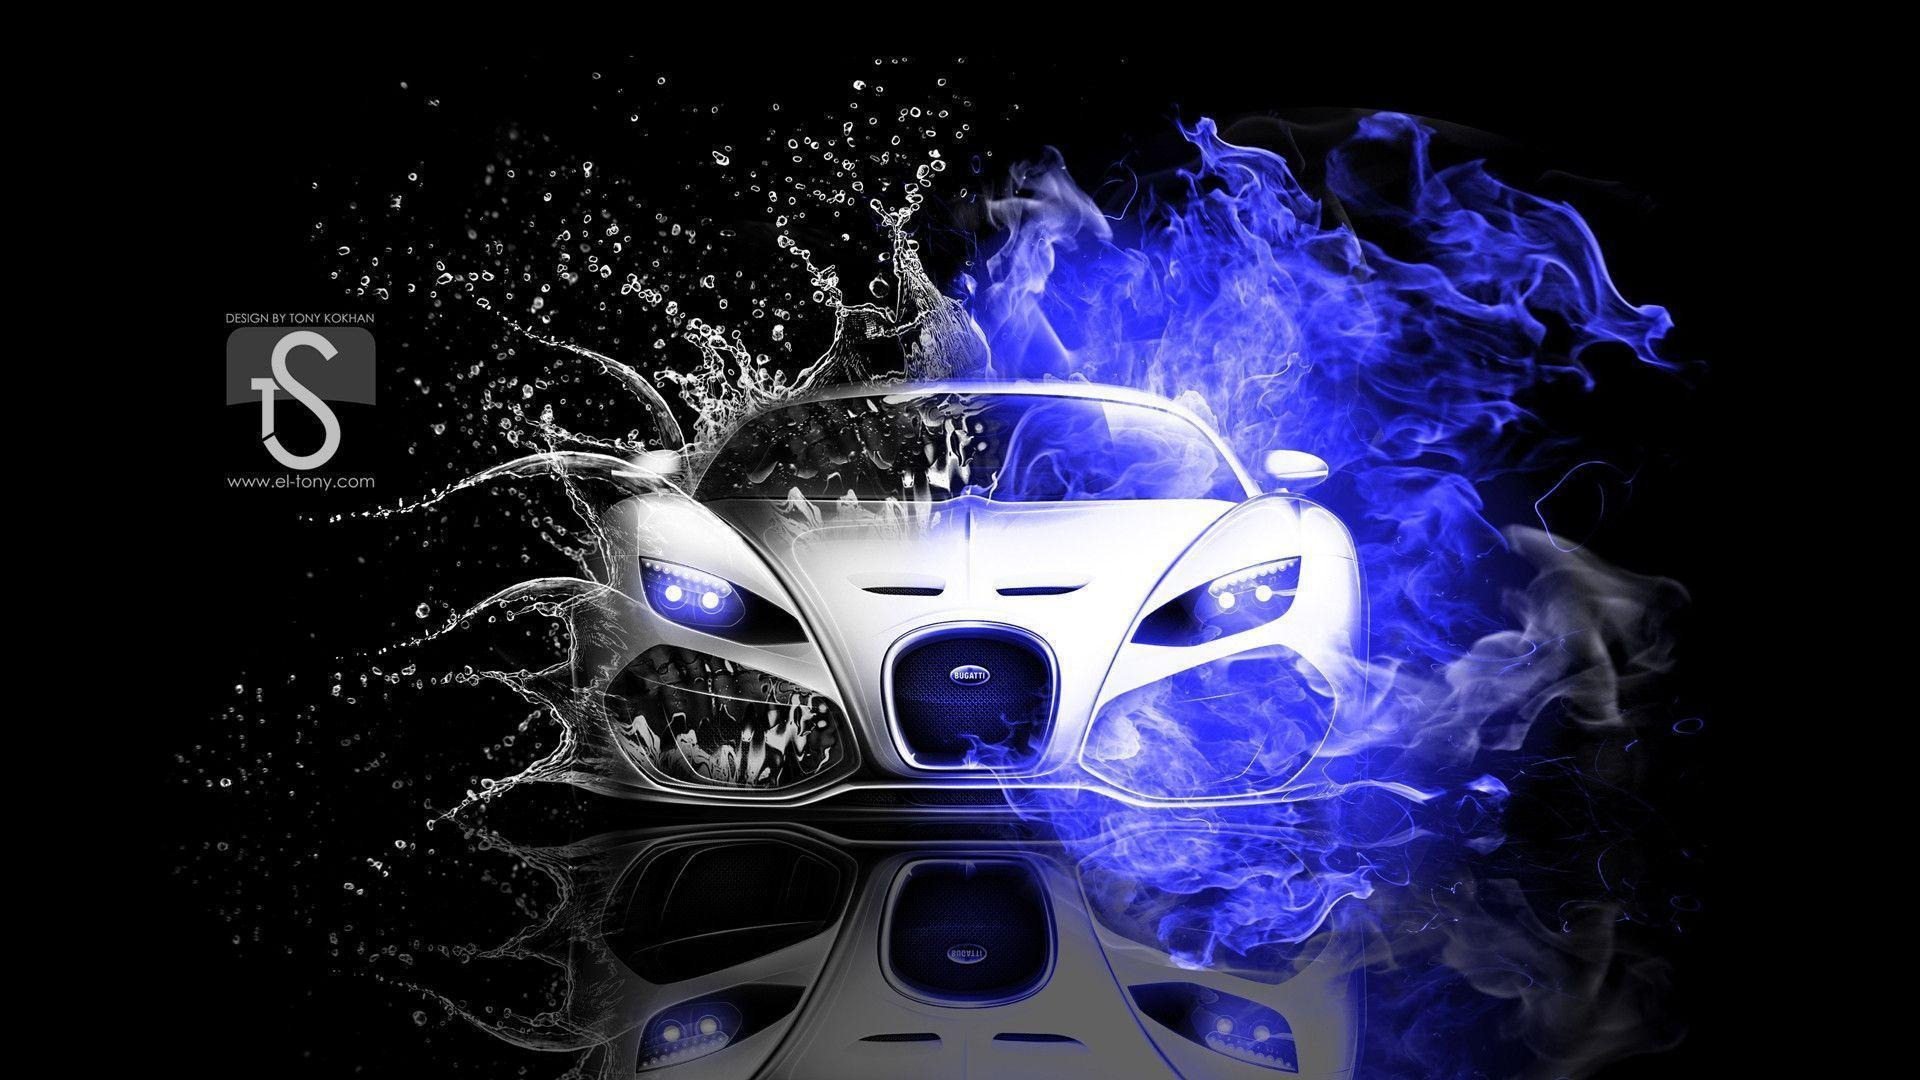 Car HD Wallpapers 1080p Wallpapers